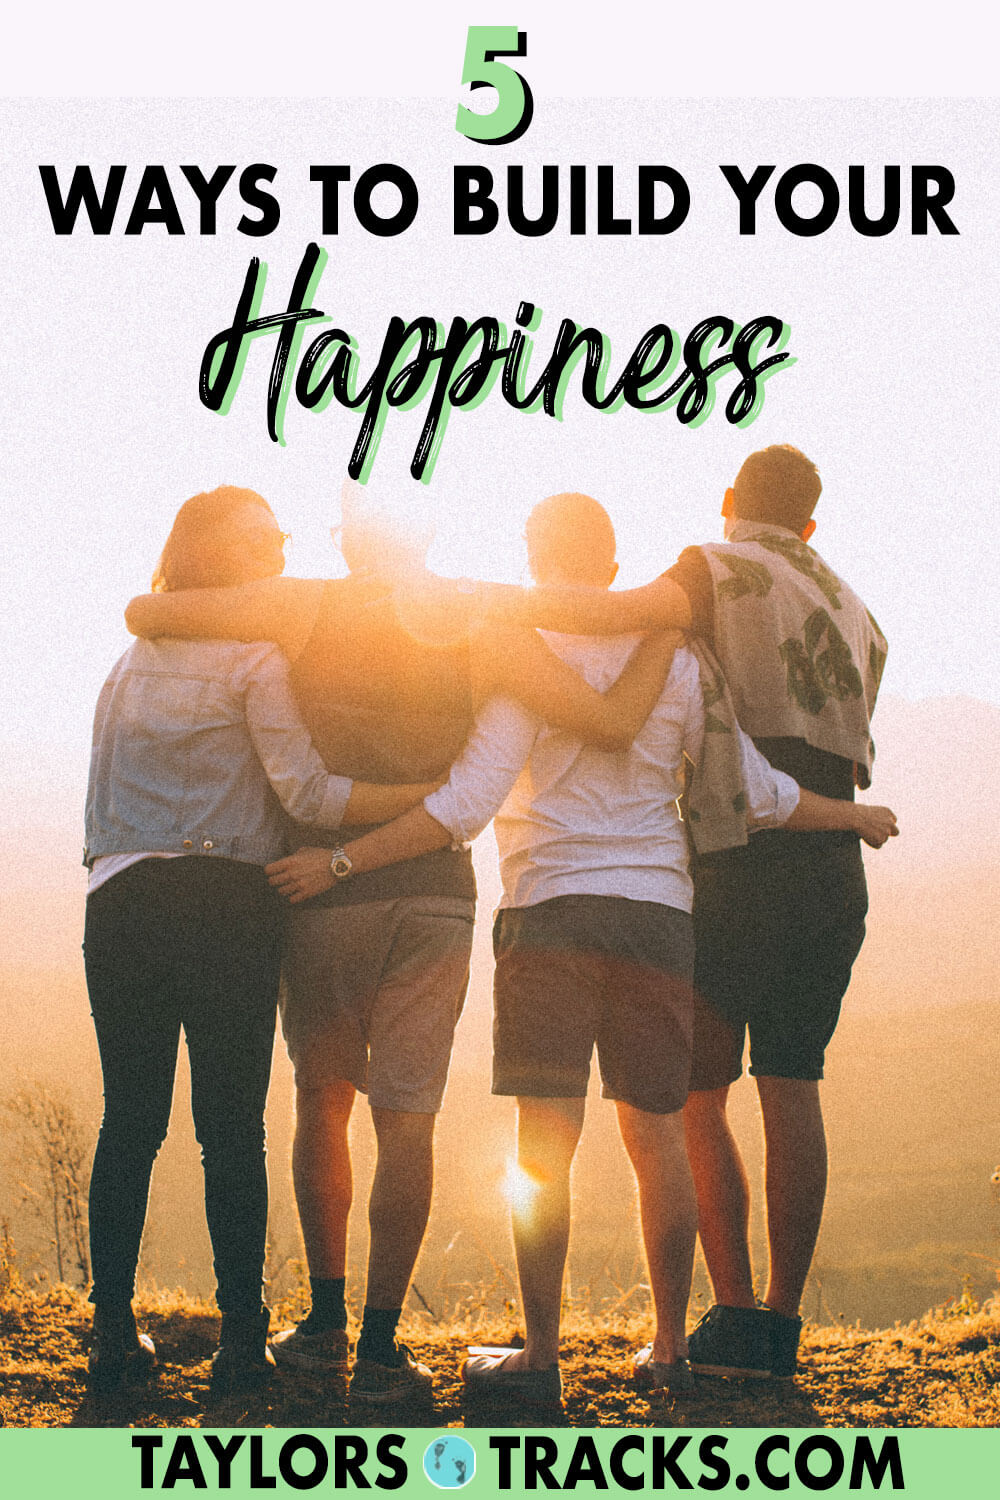 Learn how to build your happiness with these happiness tips that will teach you the 5 essential pillars of being happy. Happiness is easy, click to find out just how simple it is.